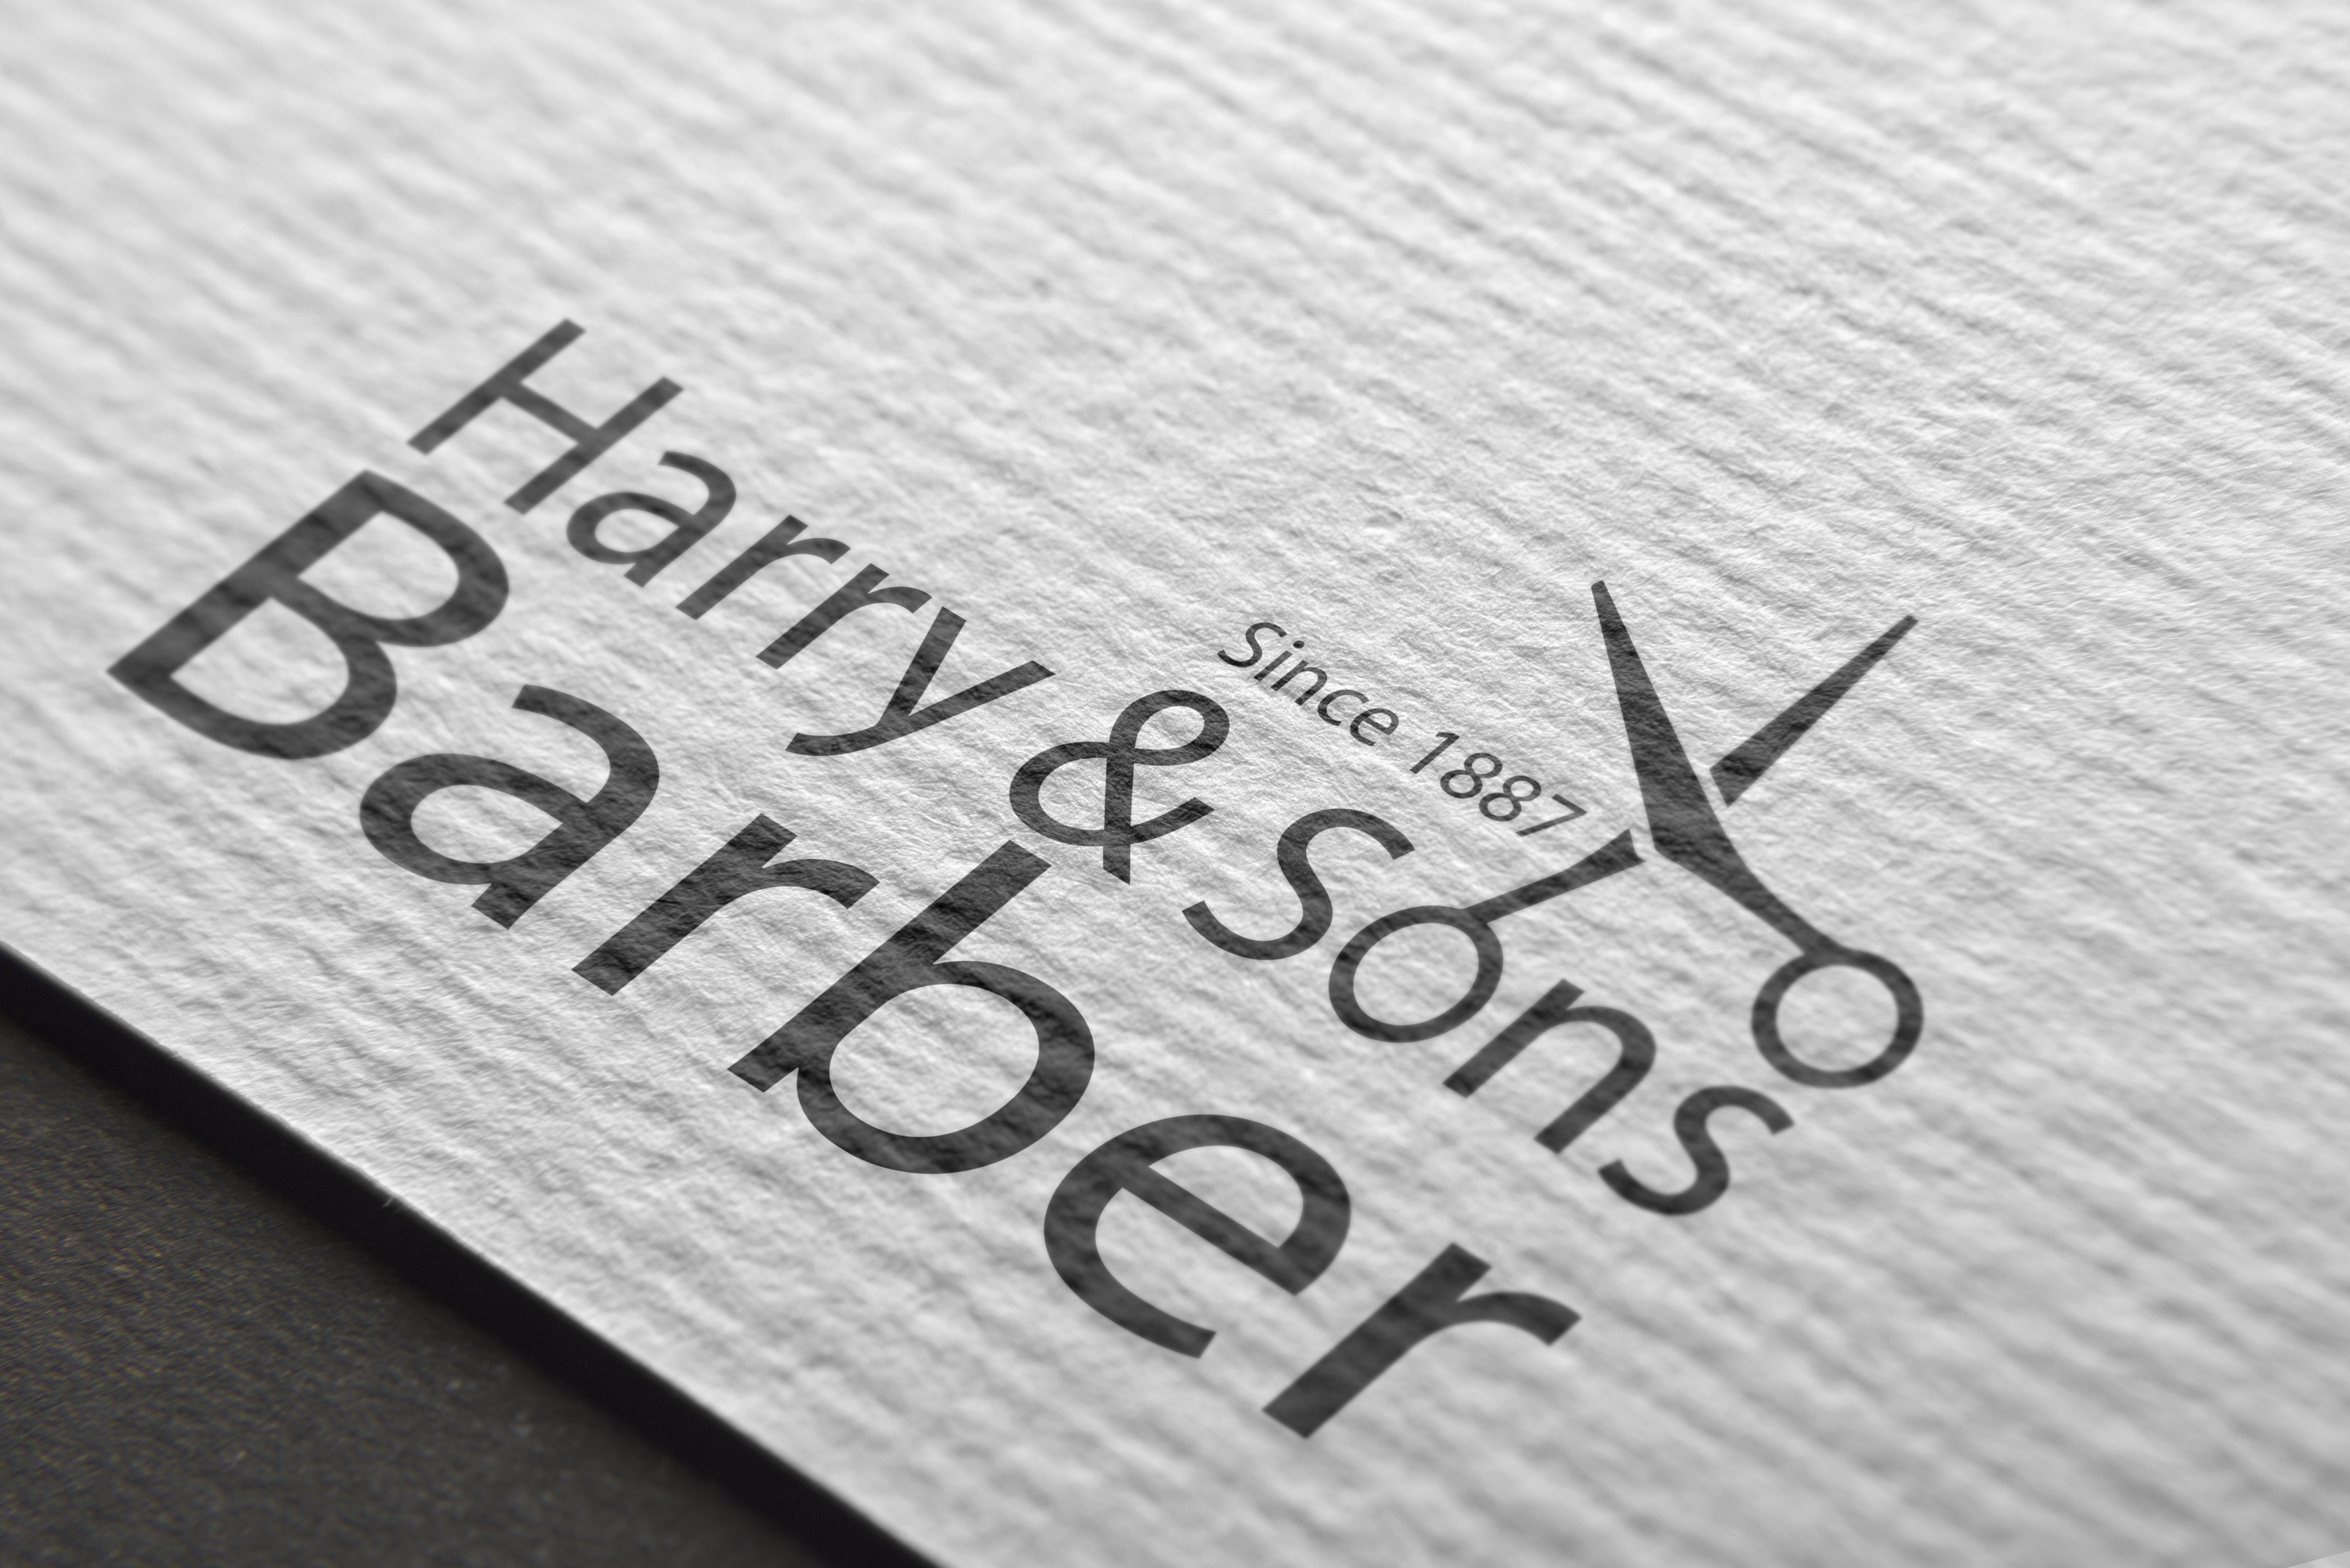 Logo Design by Moeed Khan - Entry No. 233 in the Logo Design Contest Captivating Logo Design for Harry and Sons Barber.